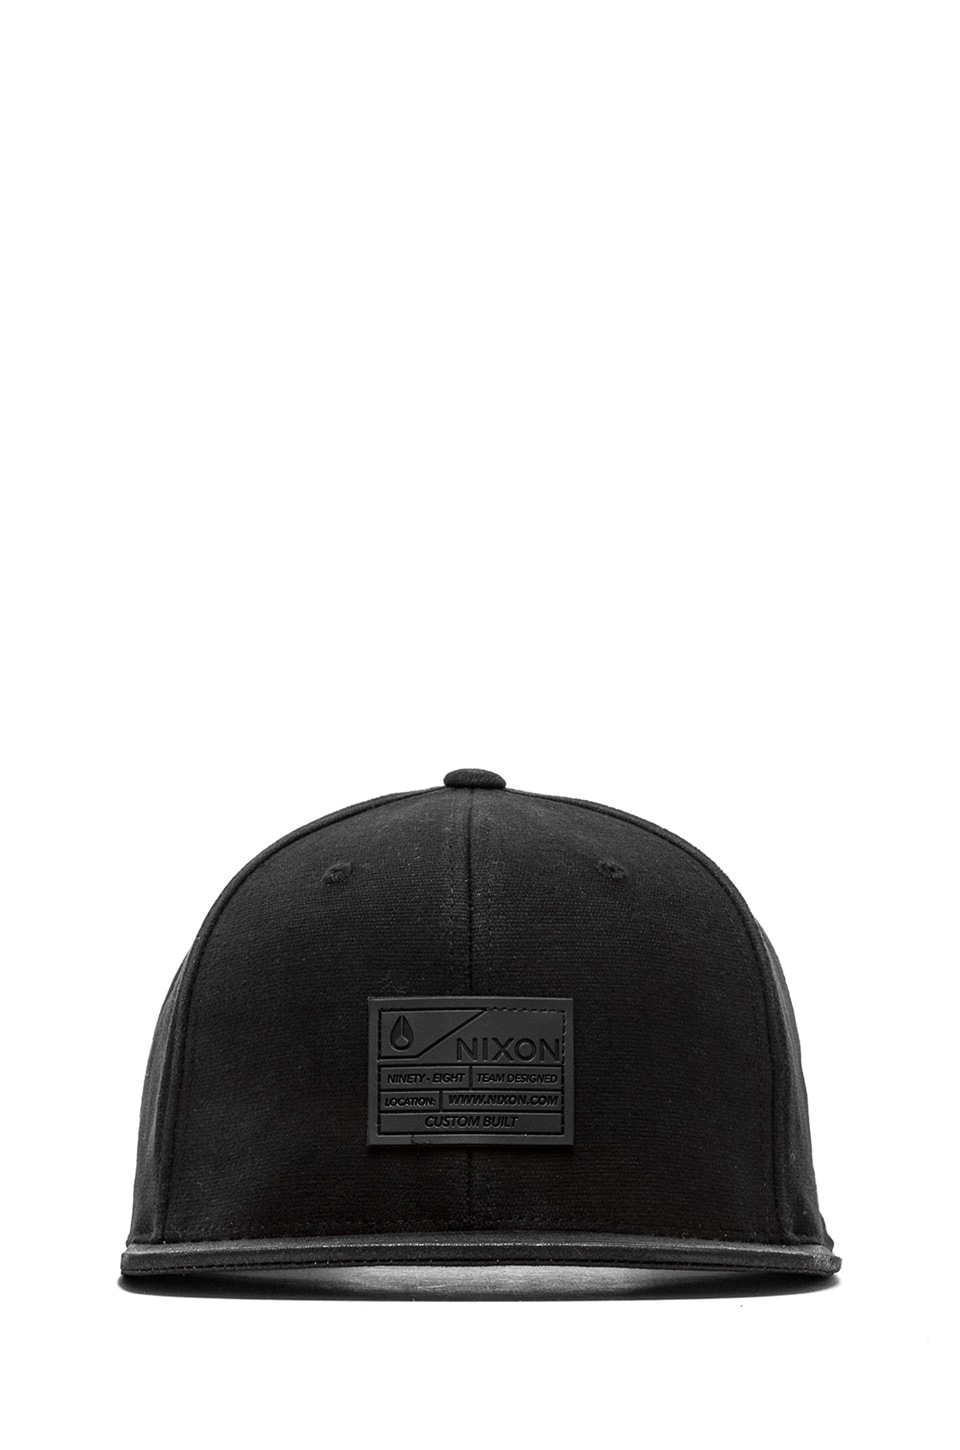 Nixon Burgeon Snap Back in All Black